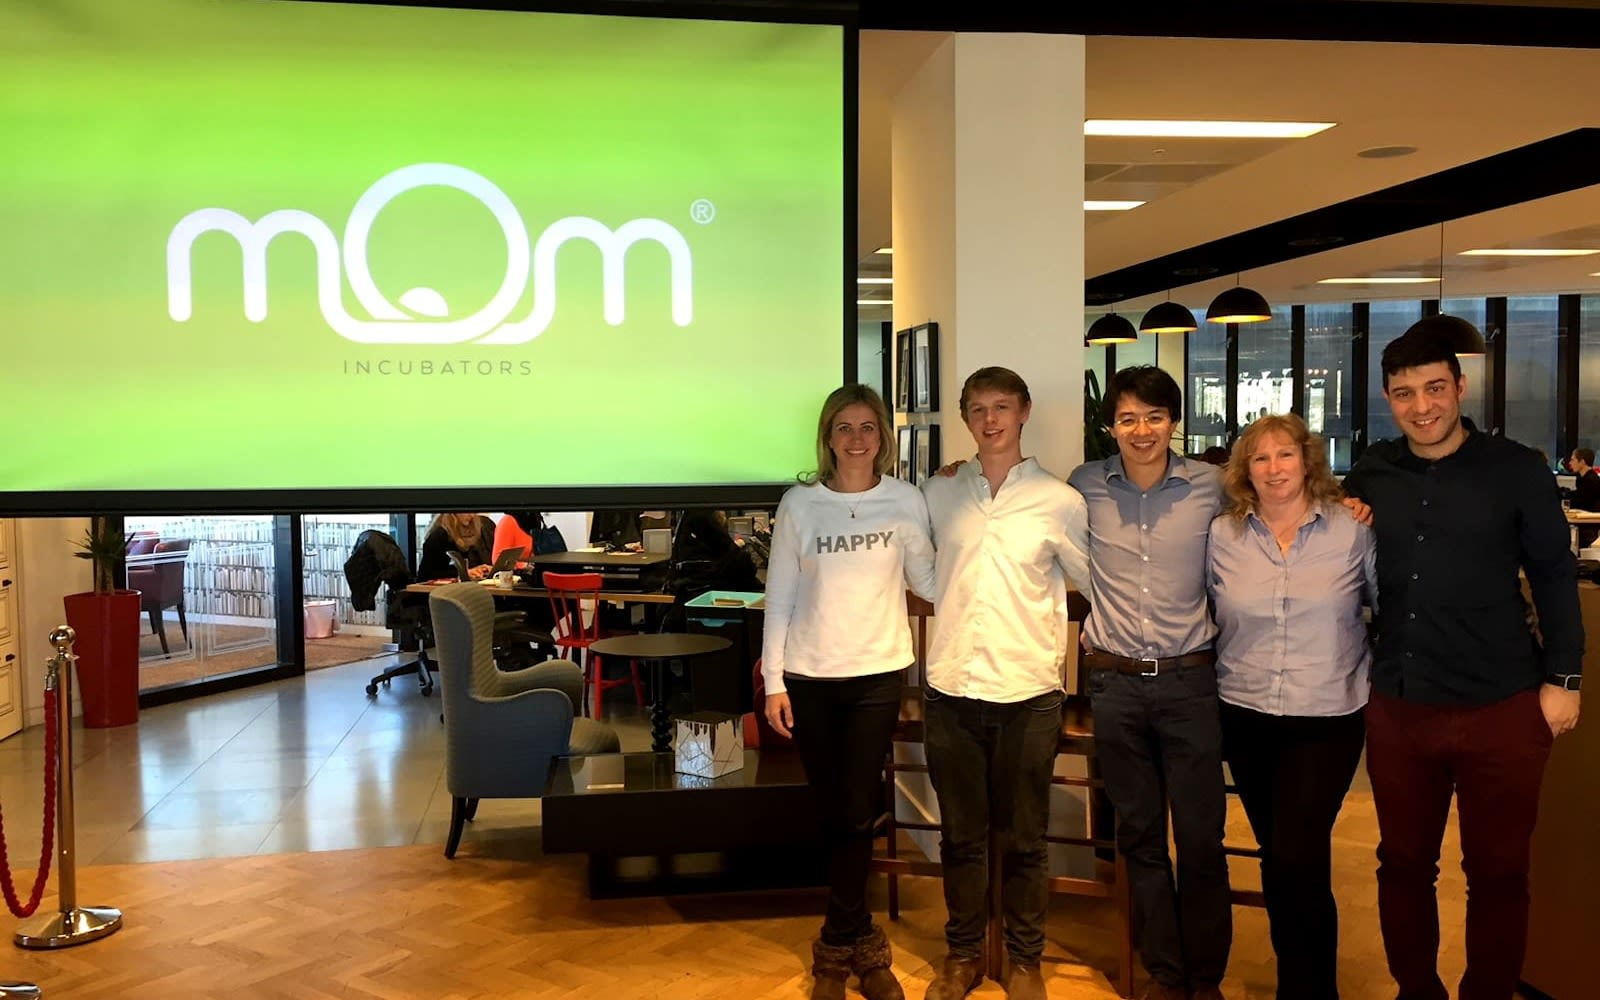 Founders of MOM with Holly Branson in front of a screen with the Mom logo